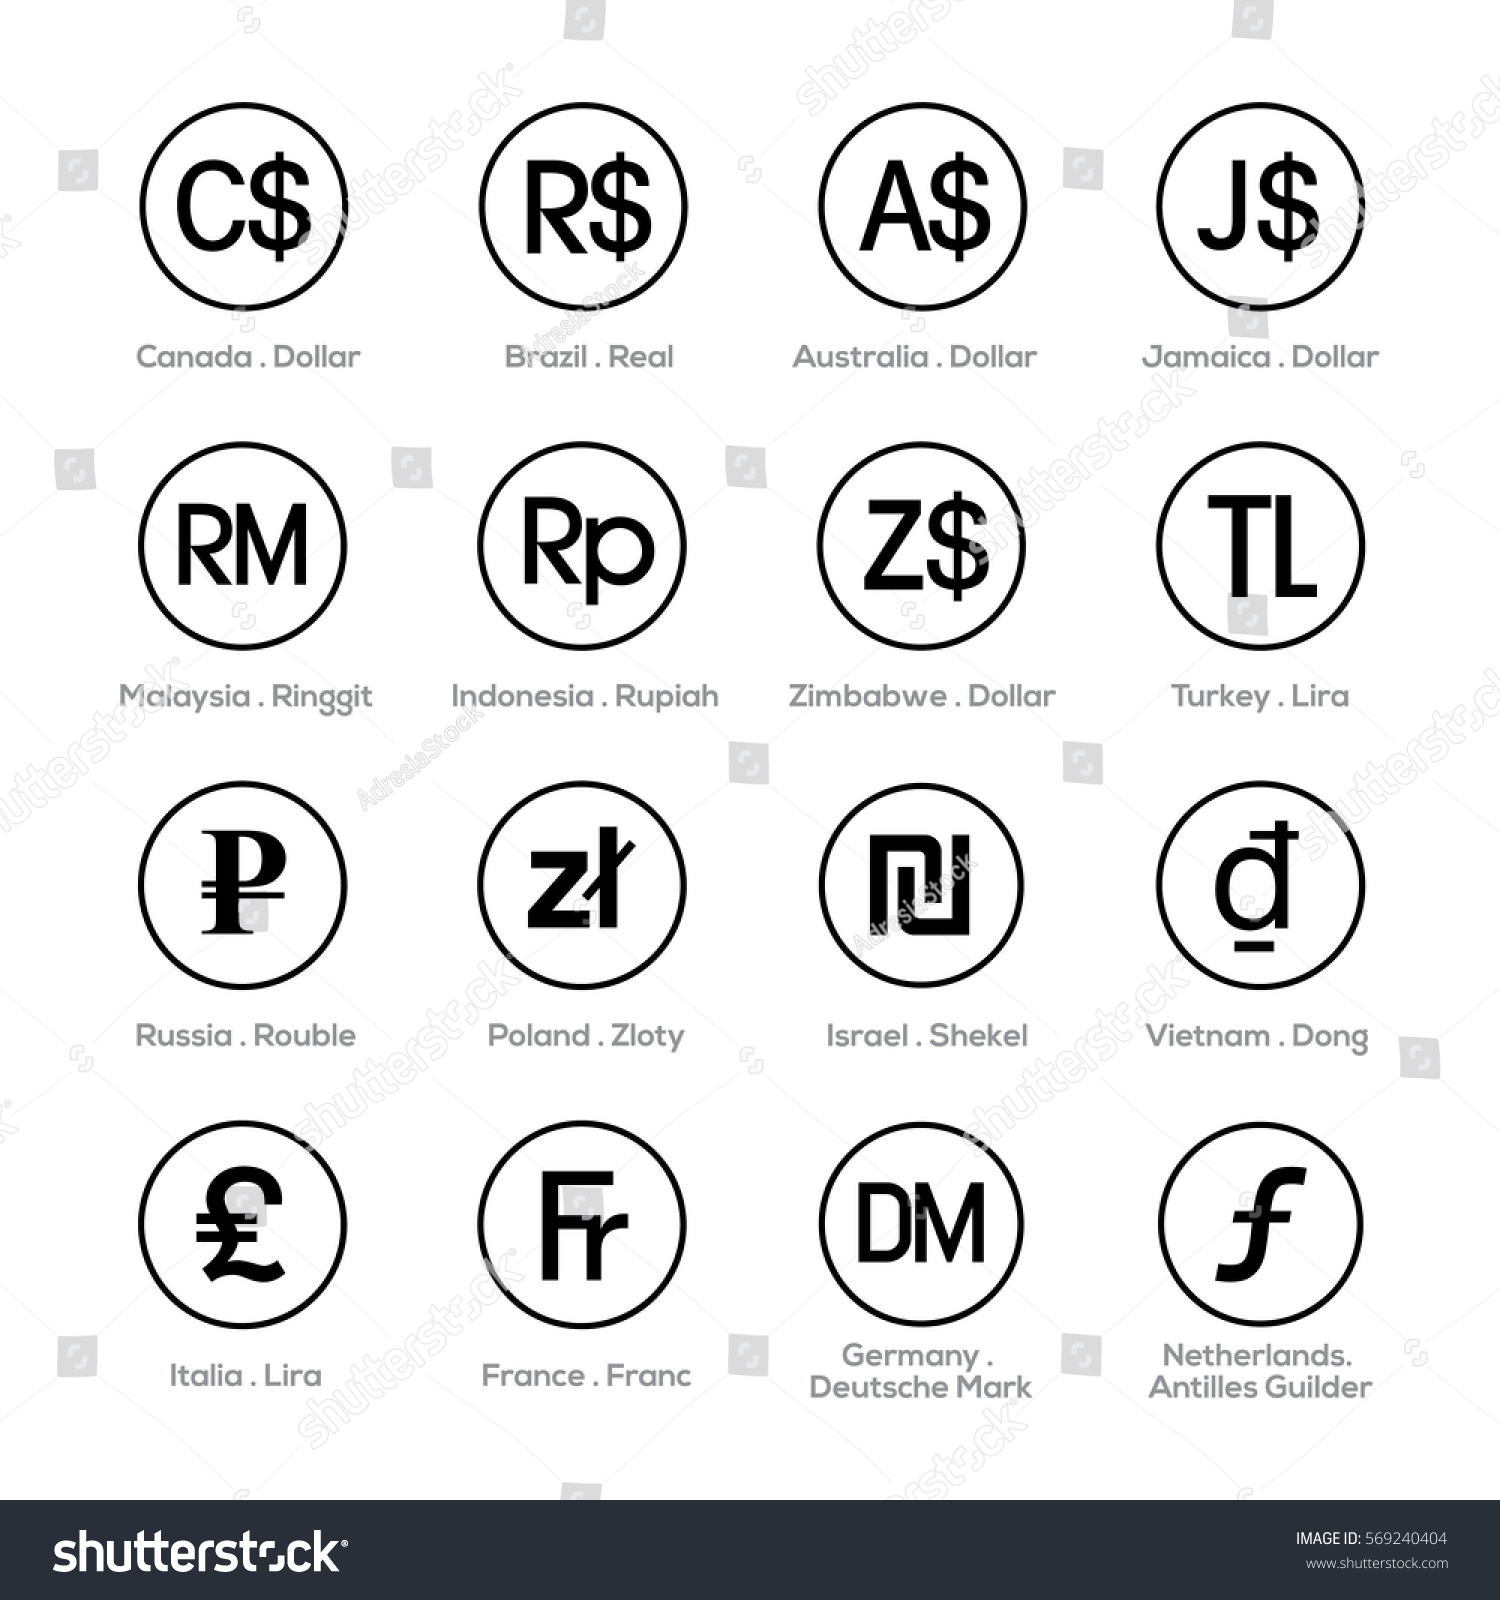 Aed currency symbol image collections symbol and sign ideas set icons currency symbol stock vector 569240404 shutterstock set of icons for currency symbol buycottarizona buycottarizona